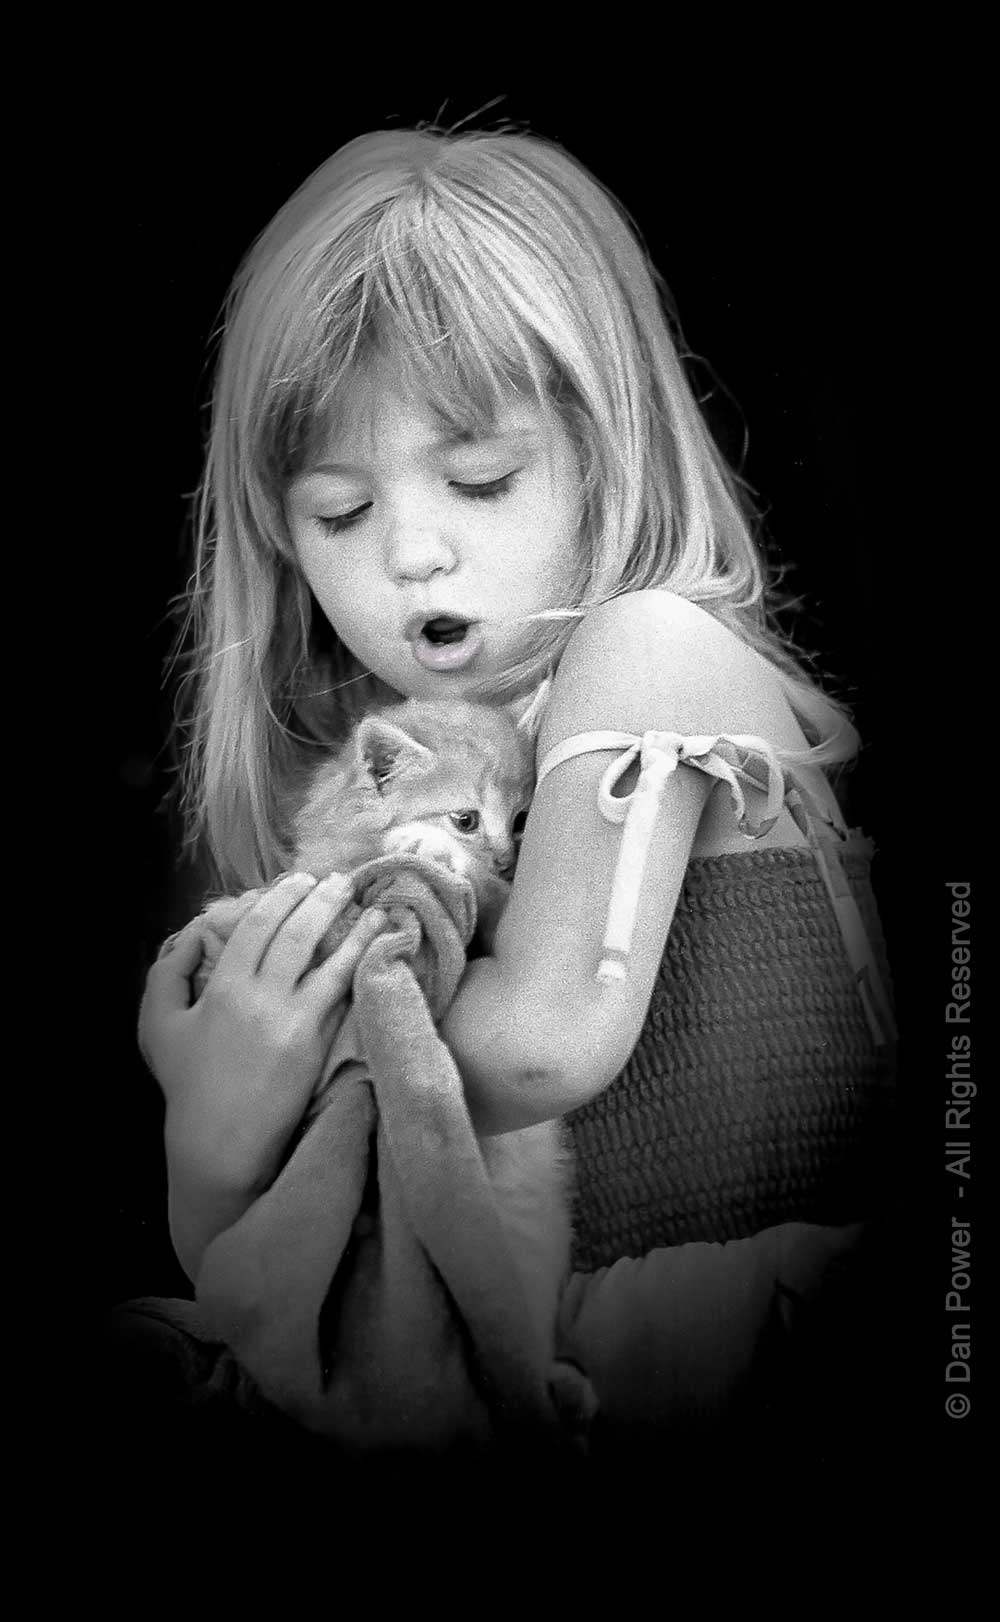 Young girl with kitten, black and white